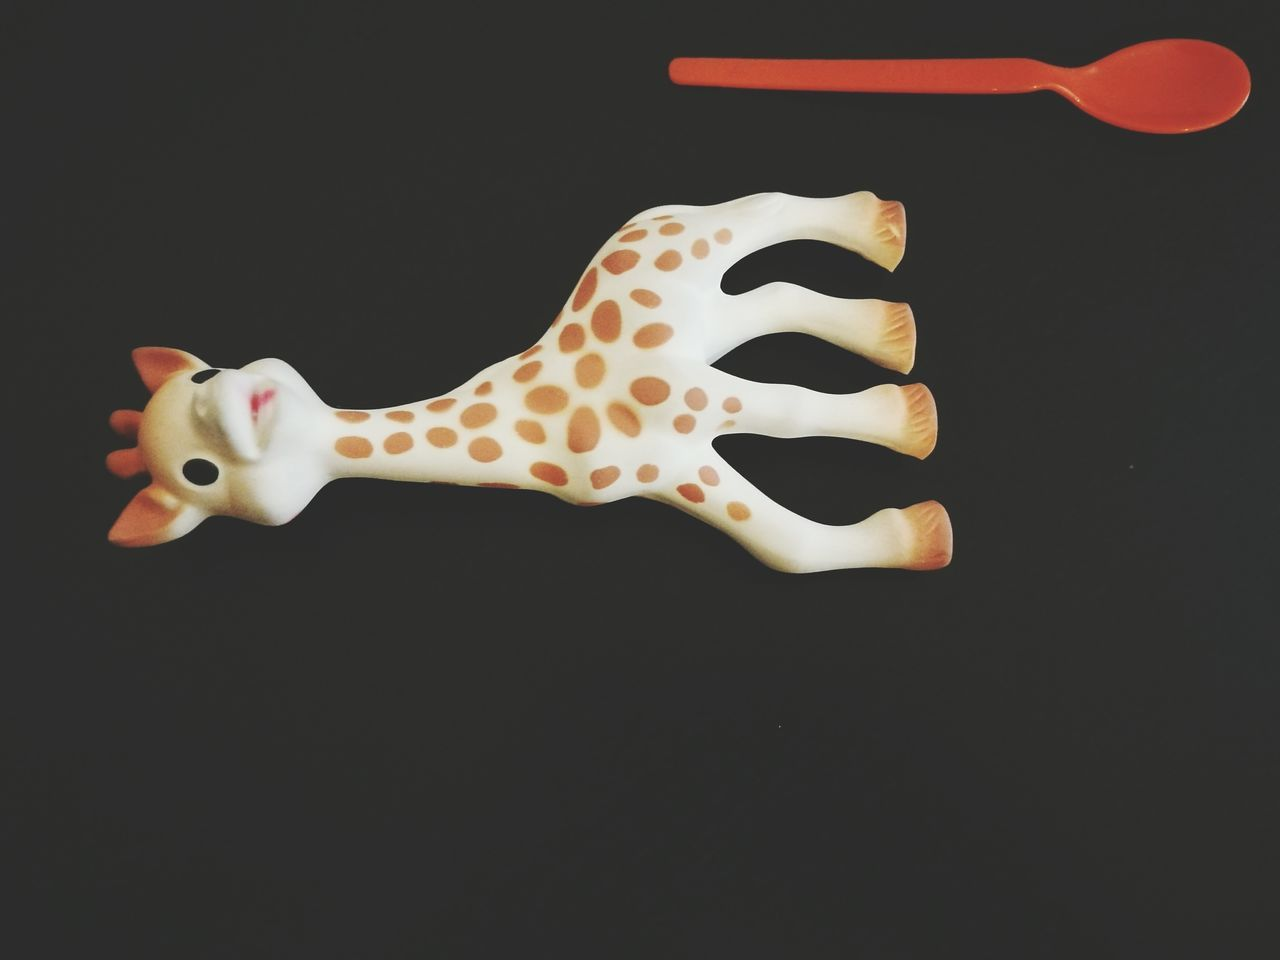 Black Background Single Object Animal Body Part Bone  No People Animal Bone Light And Shadow Alphabet Black Background Sophie Toystory Giraffe Kids Life Day Baby Spoon Zigzag Close-up Motherhood Spoon New Frontiers Hot Dog Unhealthy Eating Beauty In Nature New Life Everyday Lives